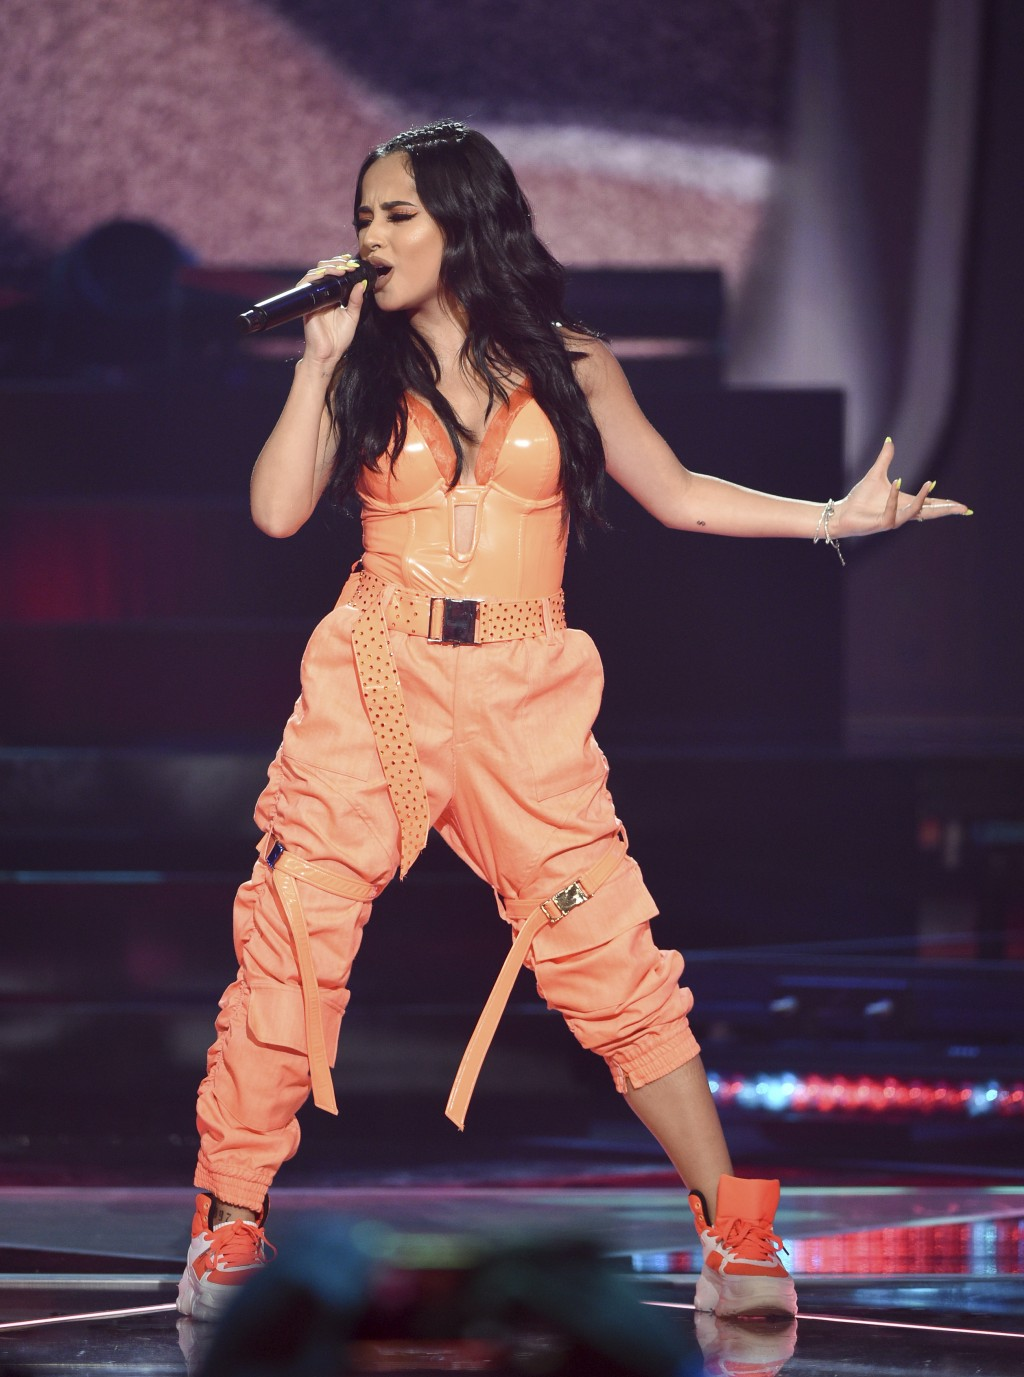 Singer Becky G performs at Amazon Music's Prime Day concert at the Hammerstein Ballroom on Wednesday, July 10, 2019, in New York. (Photo by Evan Agost...